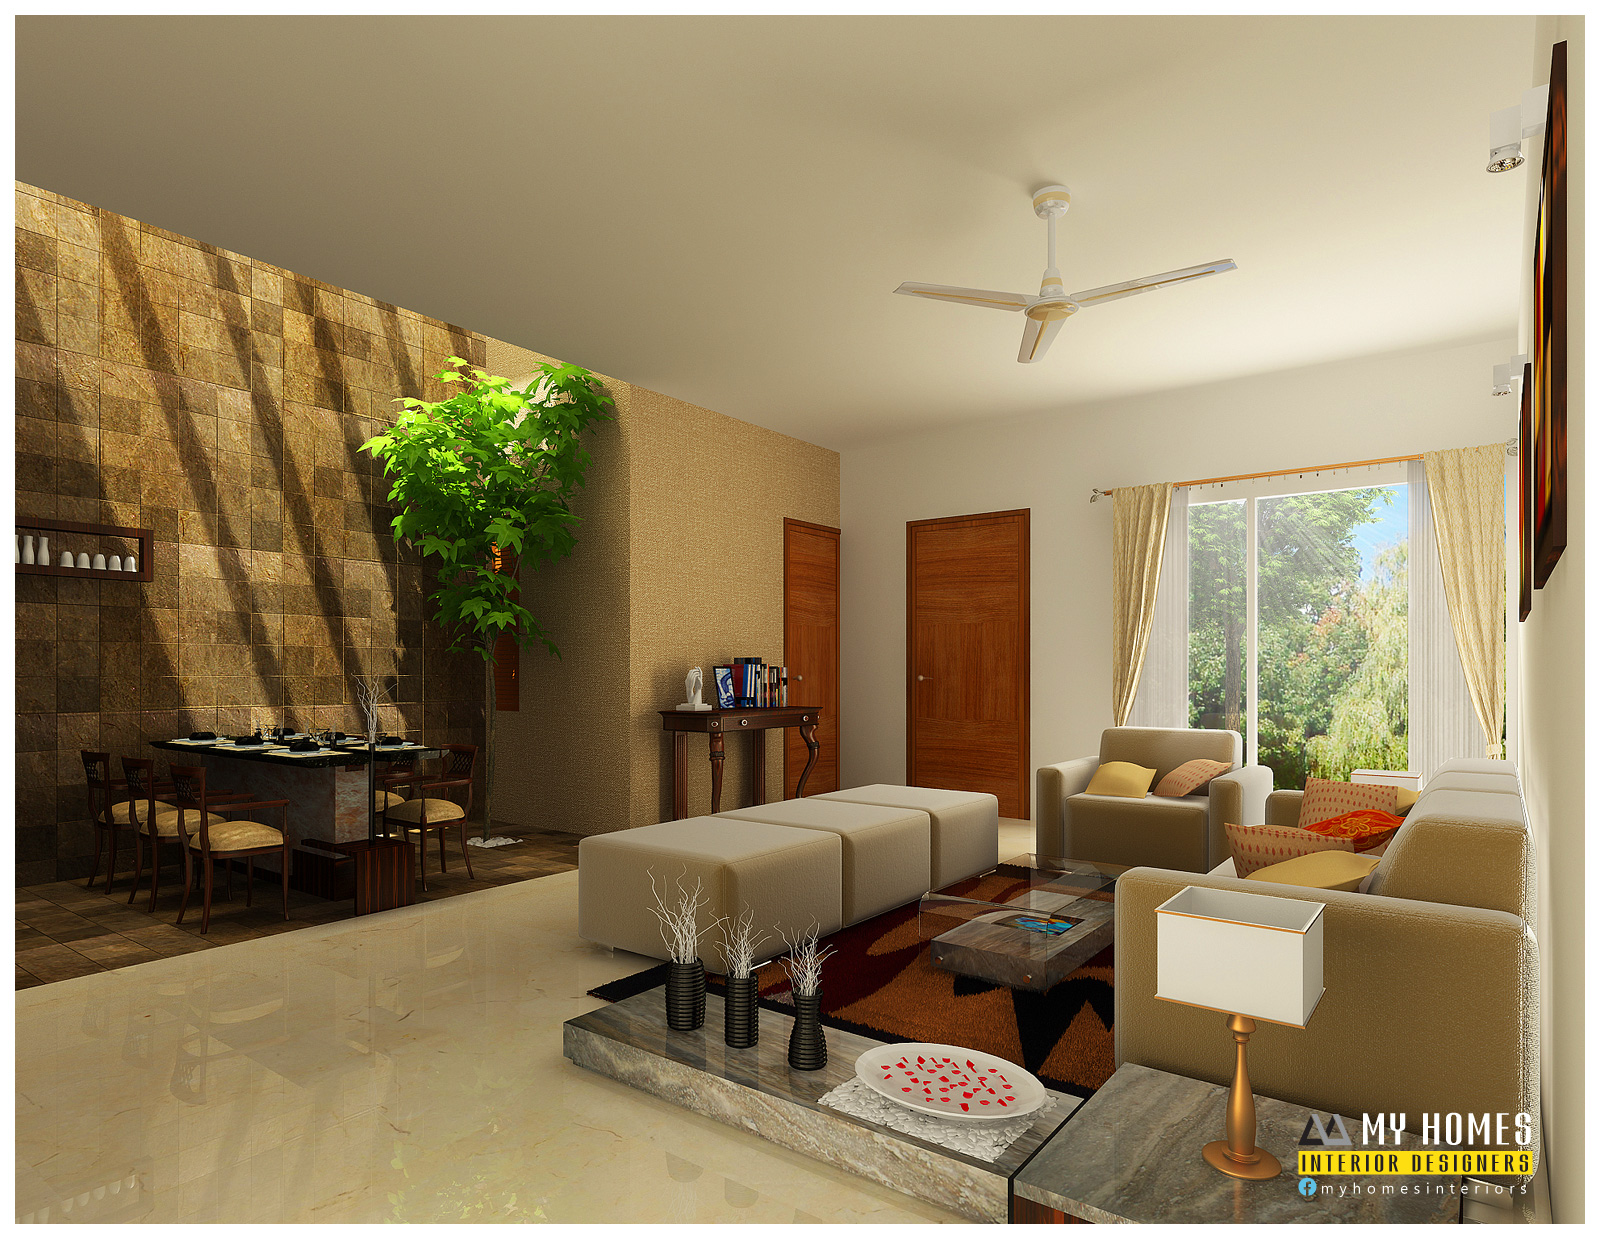 Kerala interior design ideas from designing company thrissur for Kerala house interior arch design